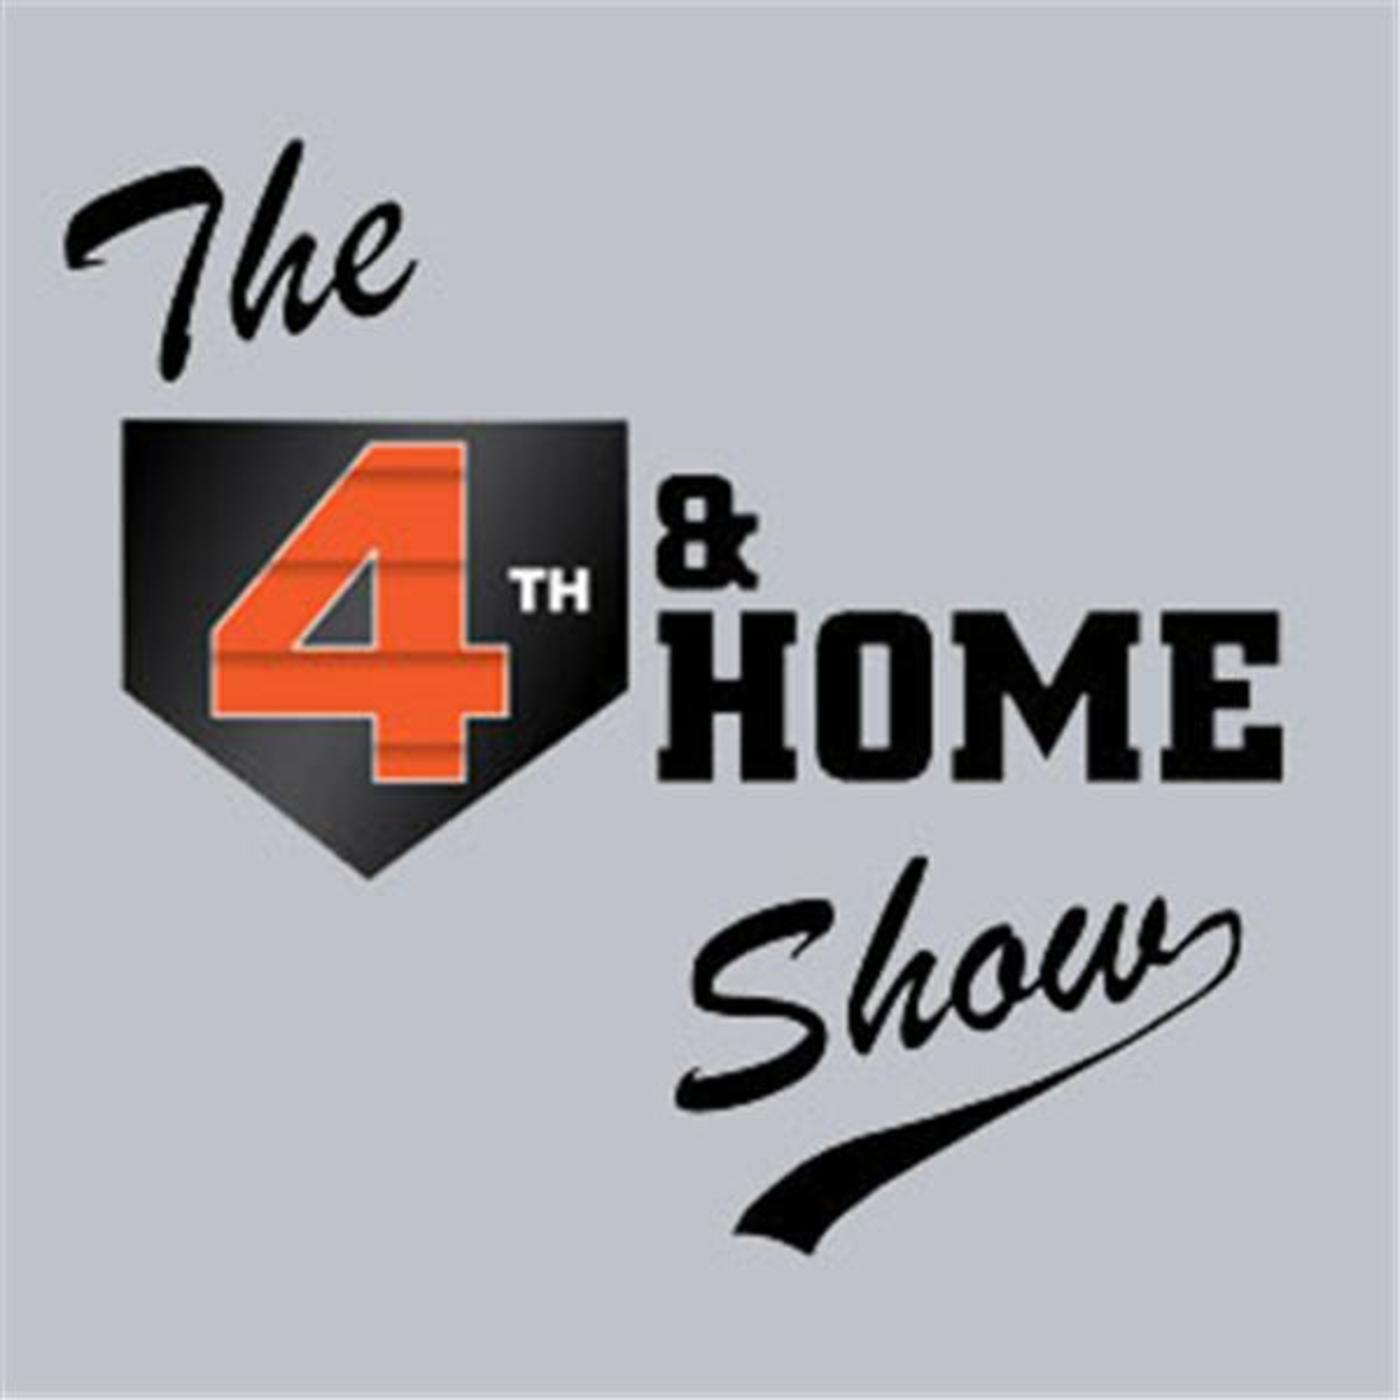 The 4th and Home Show